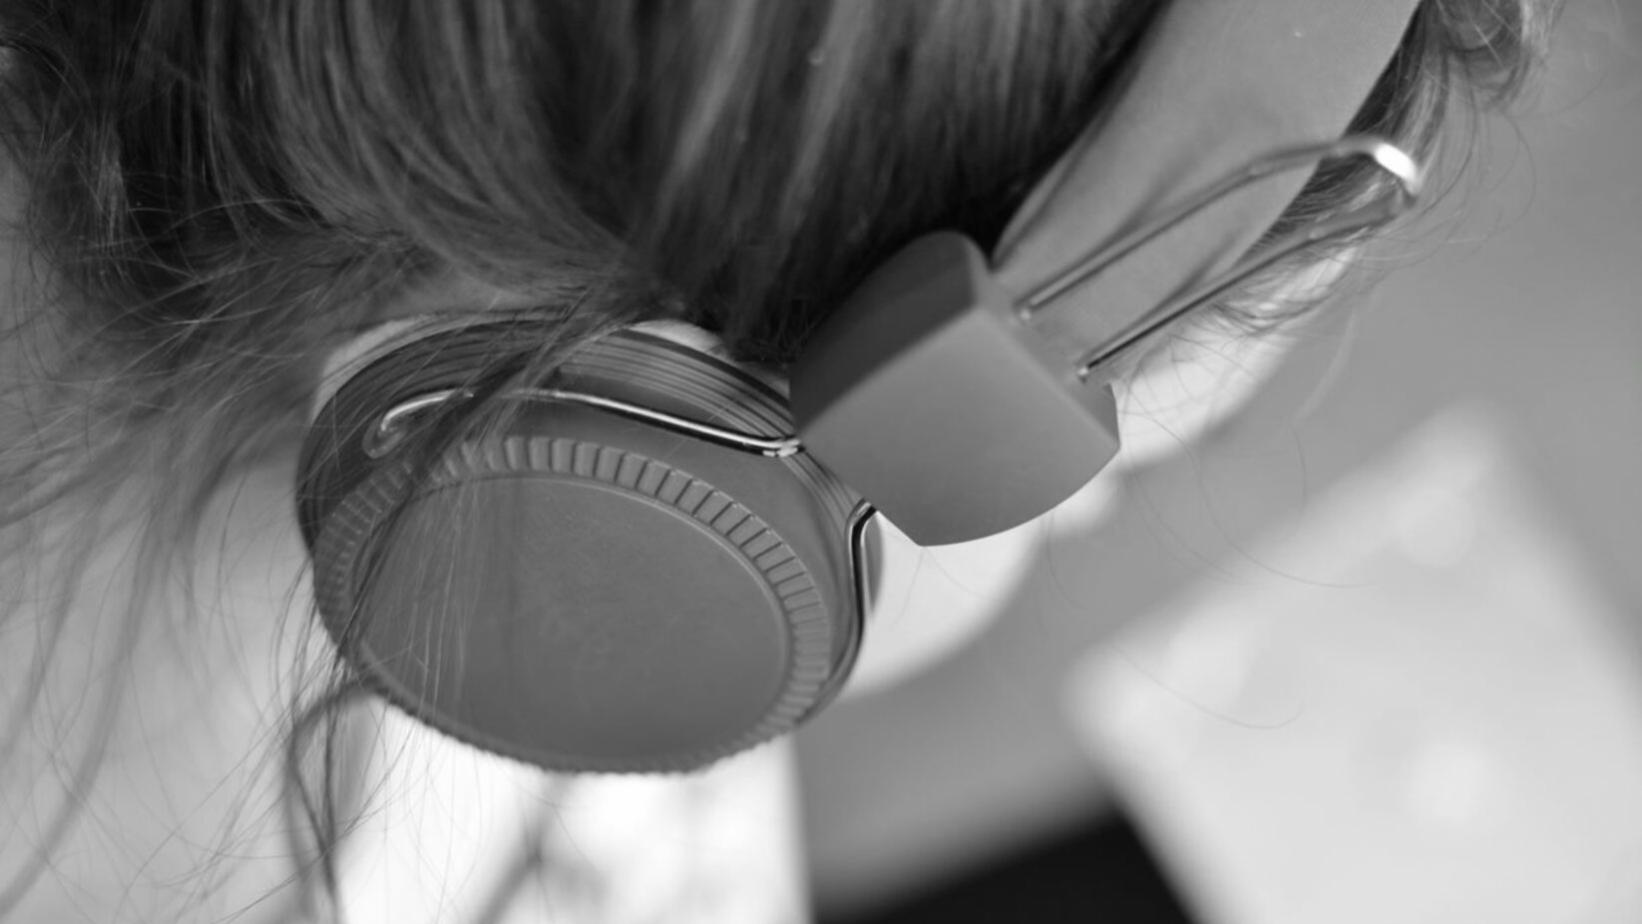 Photo of person with headphones